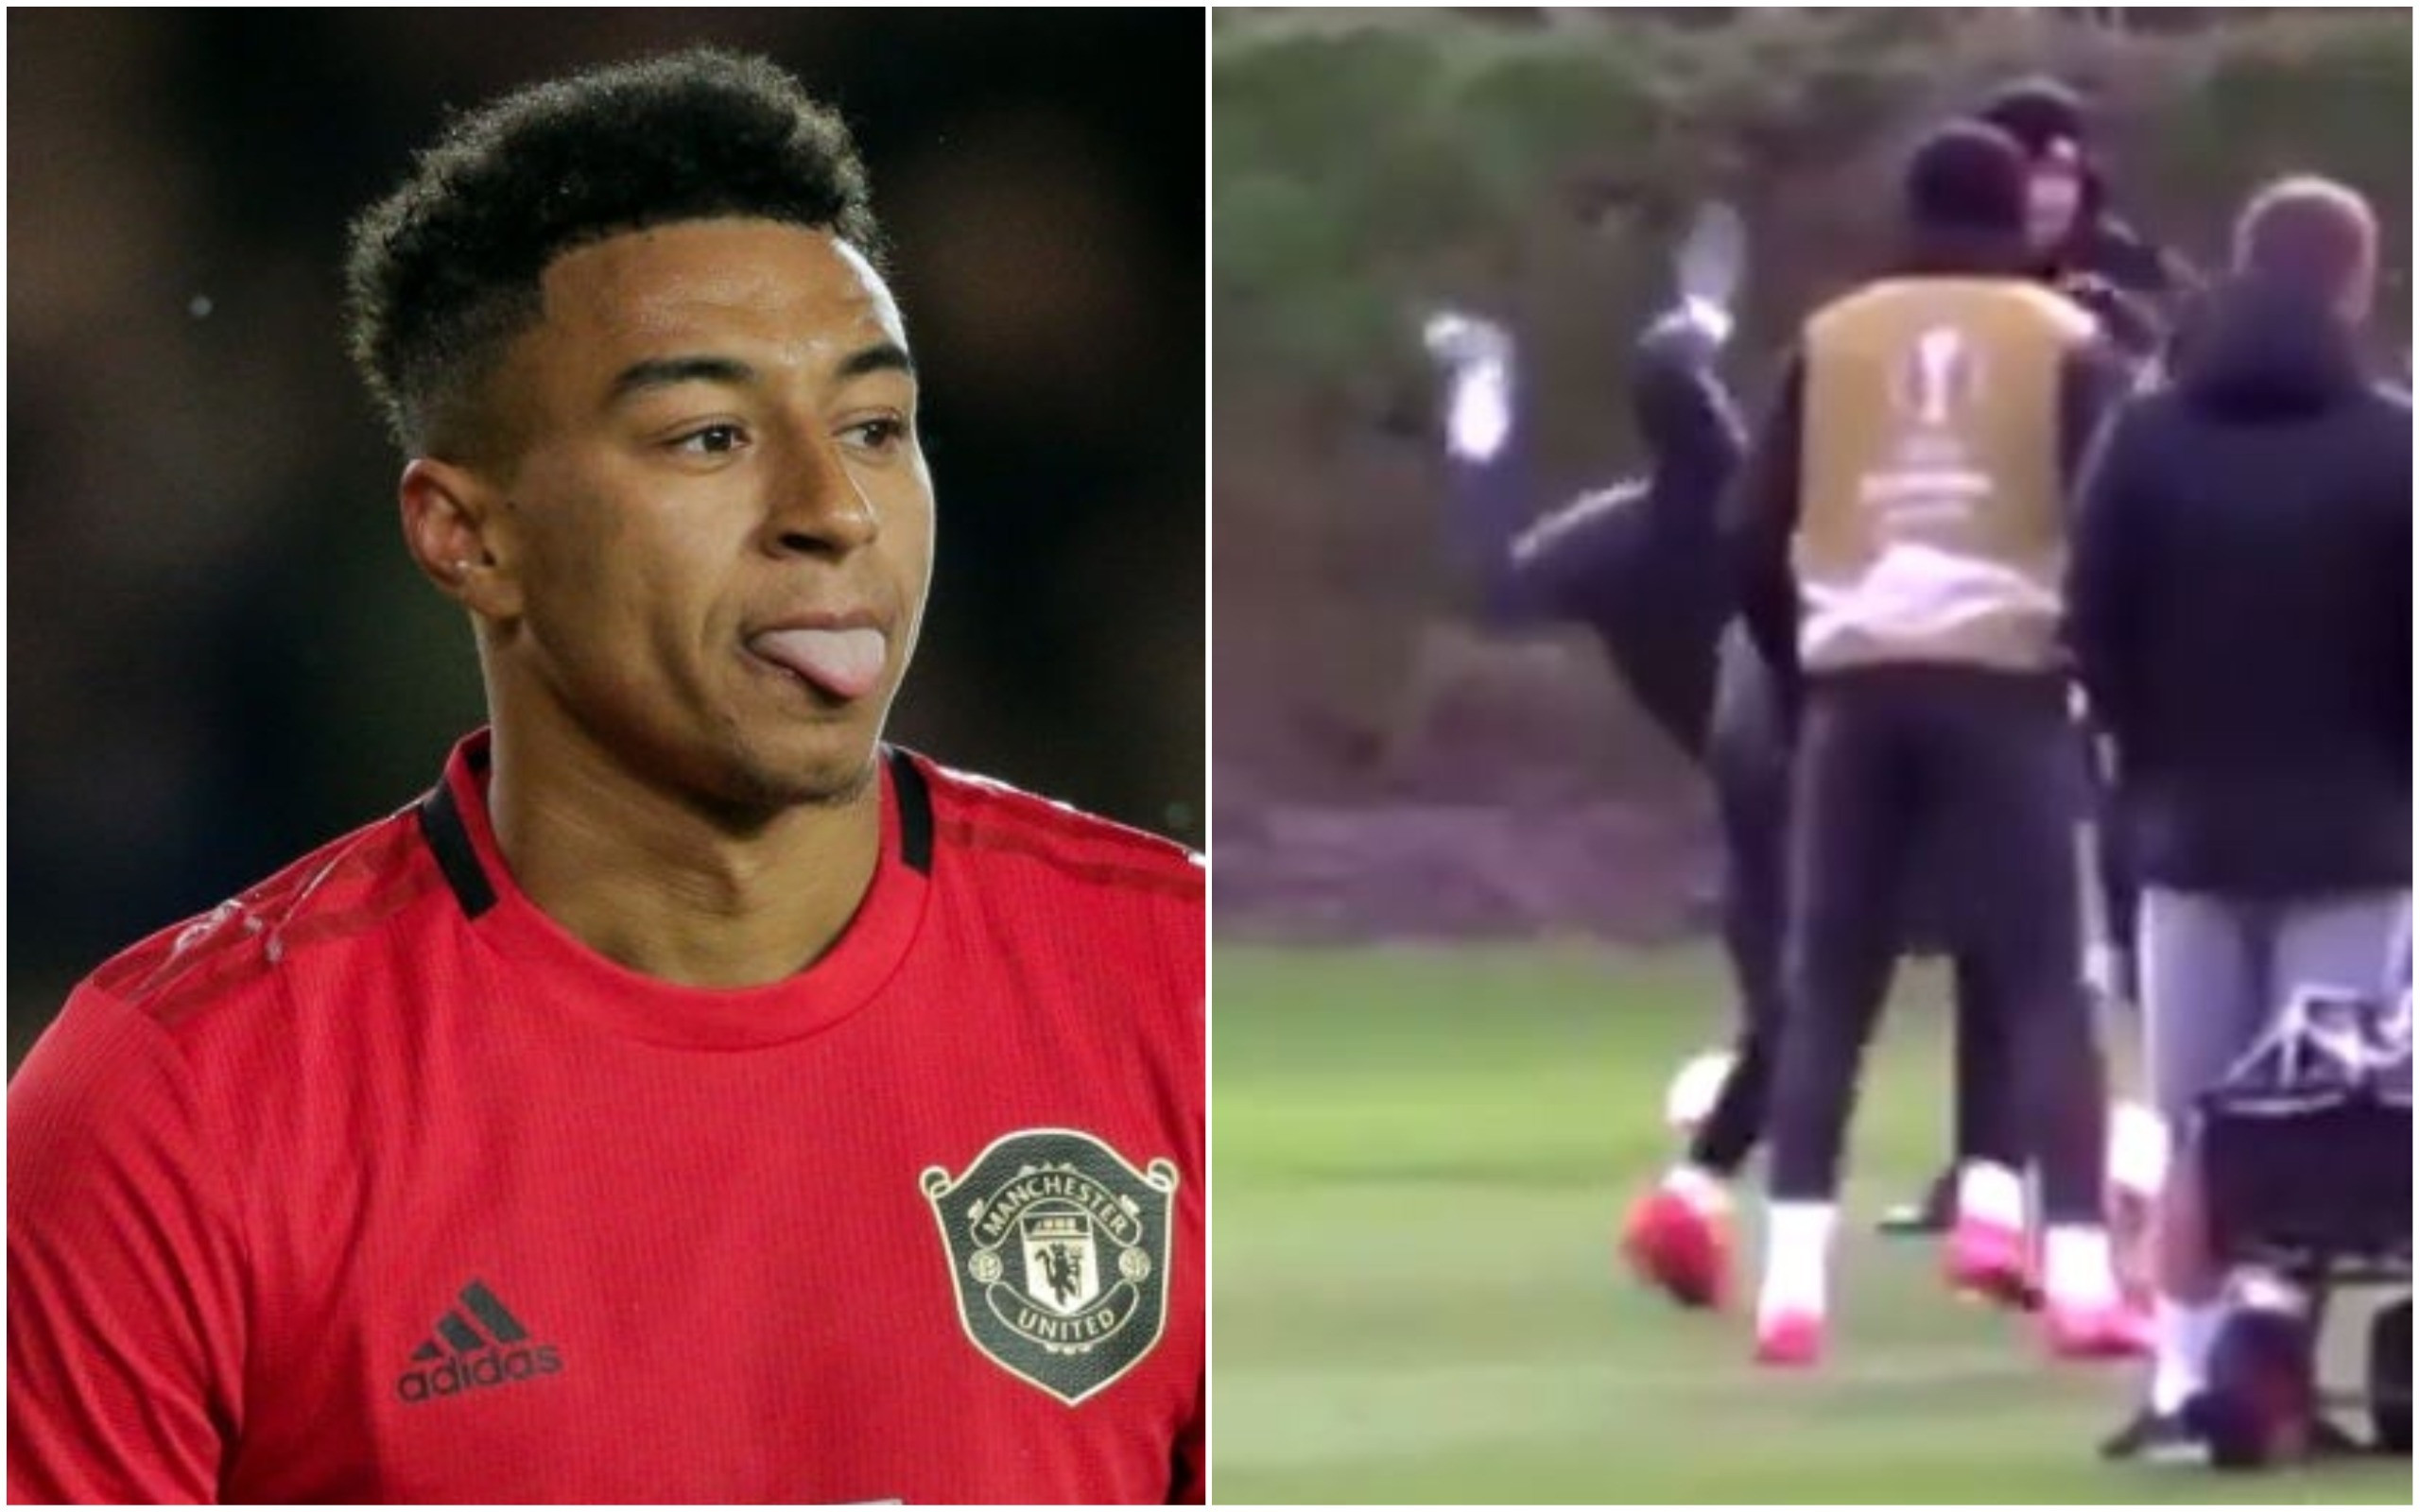 Manchester United fans slam Jesse Lingard for fooling around in training behind Ole Gunnar Solskjaer's back - Bóng Đá